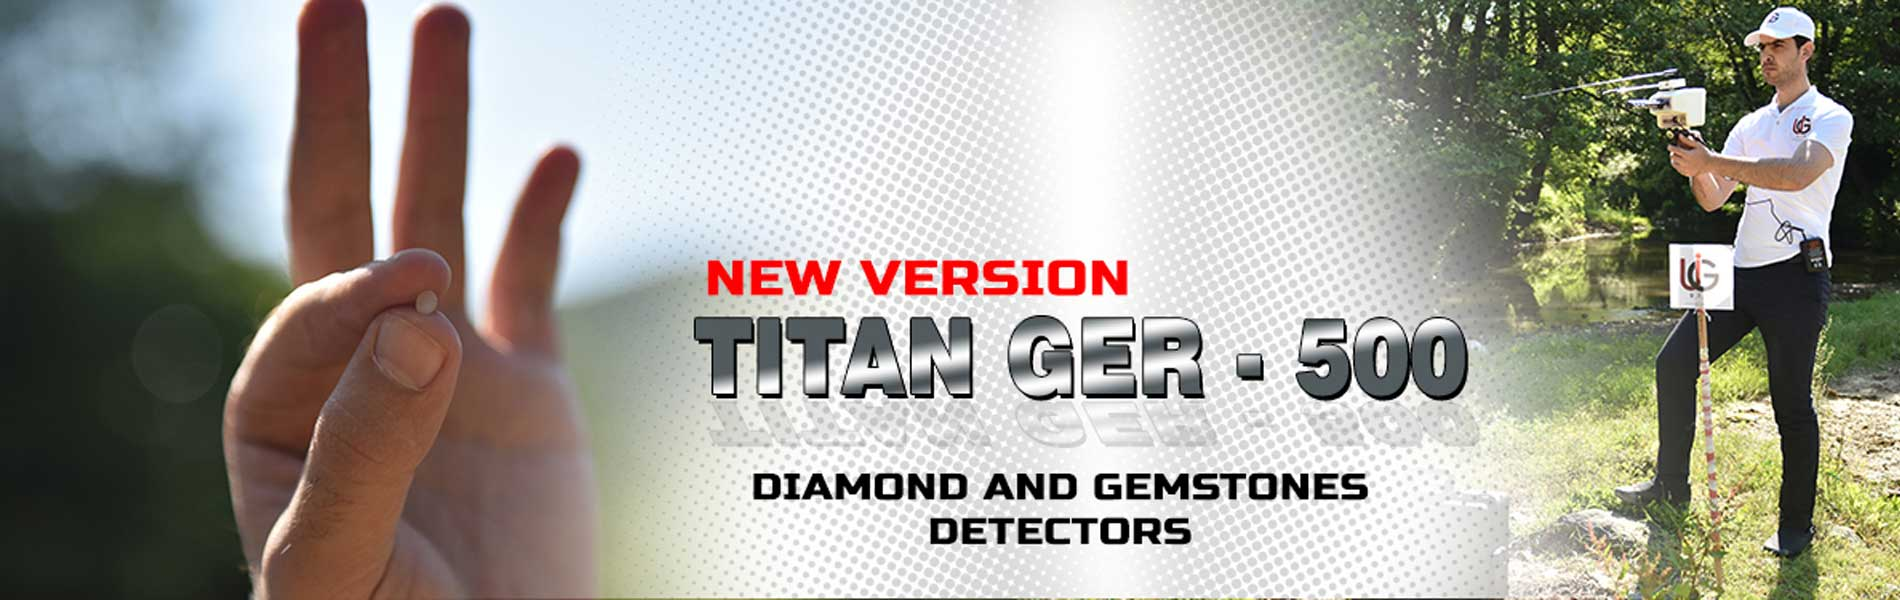 diamond and gemstones - titan ger - 500 plus device